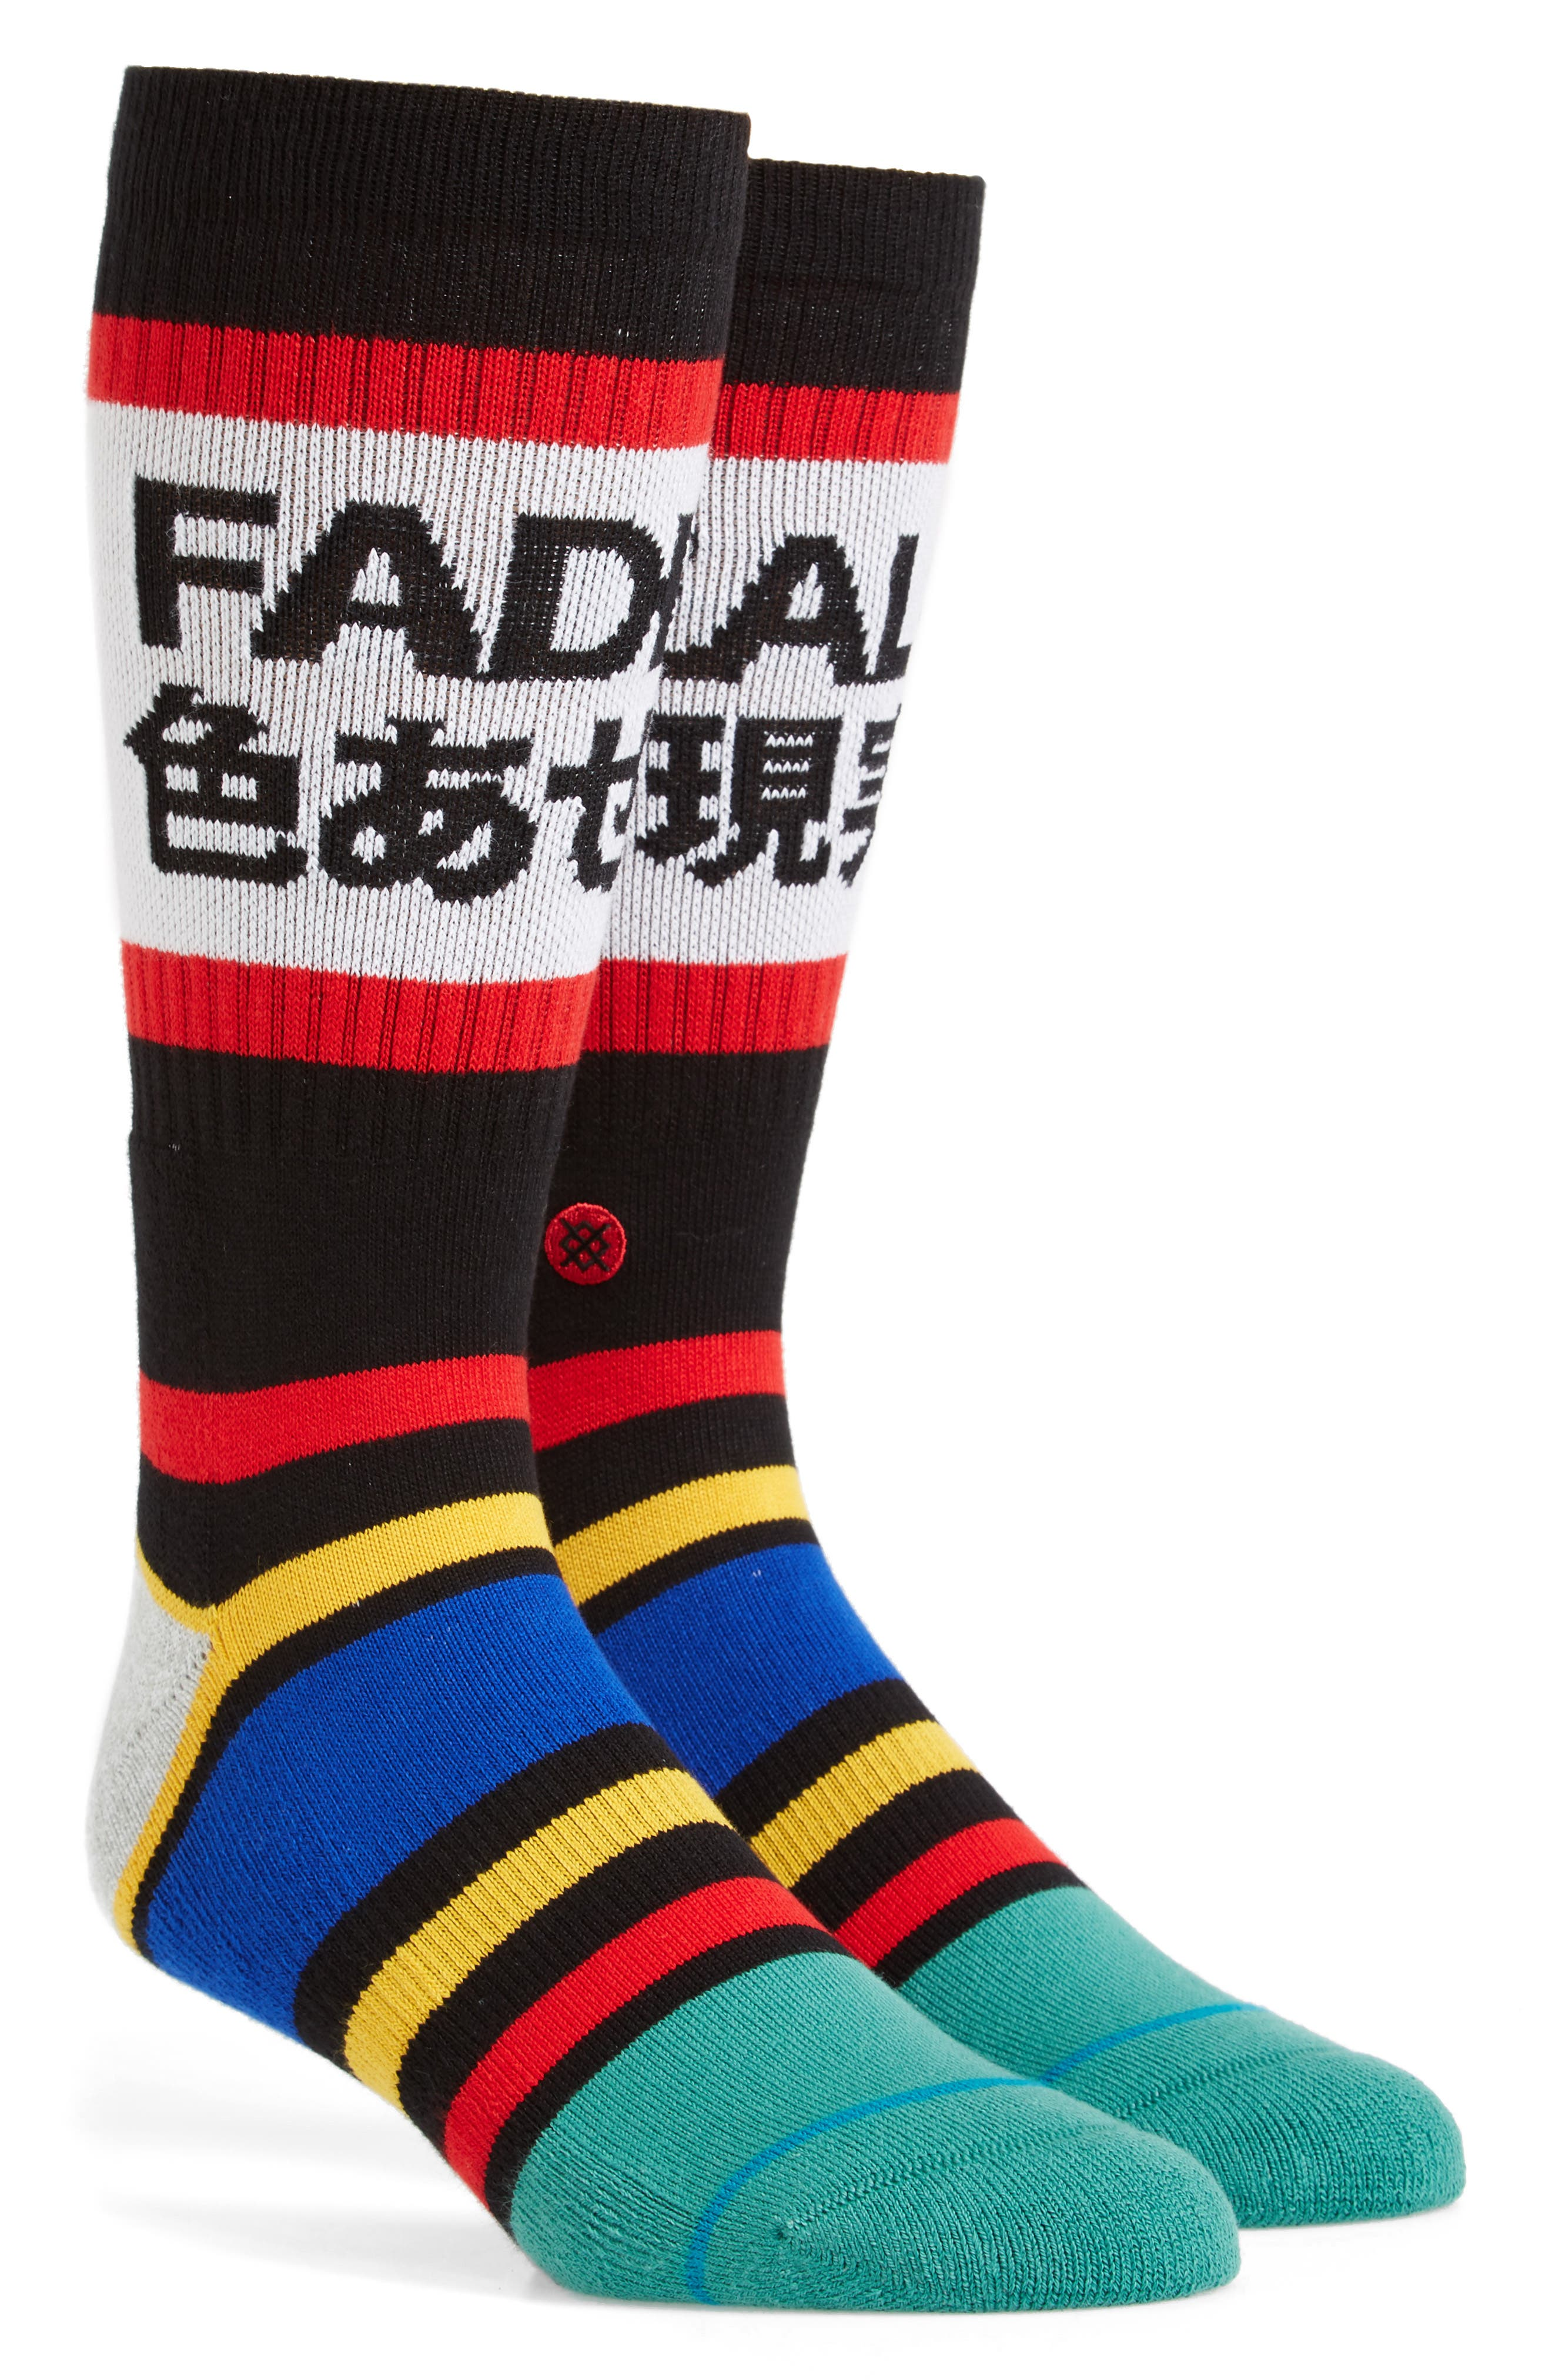 Fade Out Crew Socks,                         Main,                         color, Multi